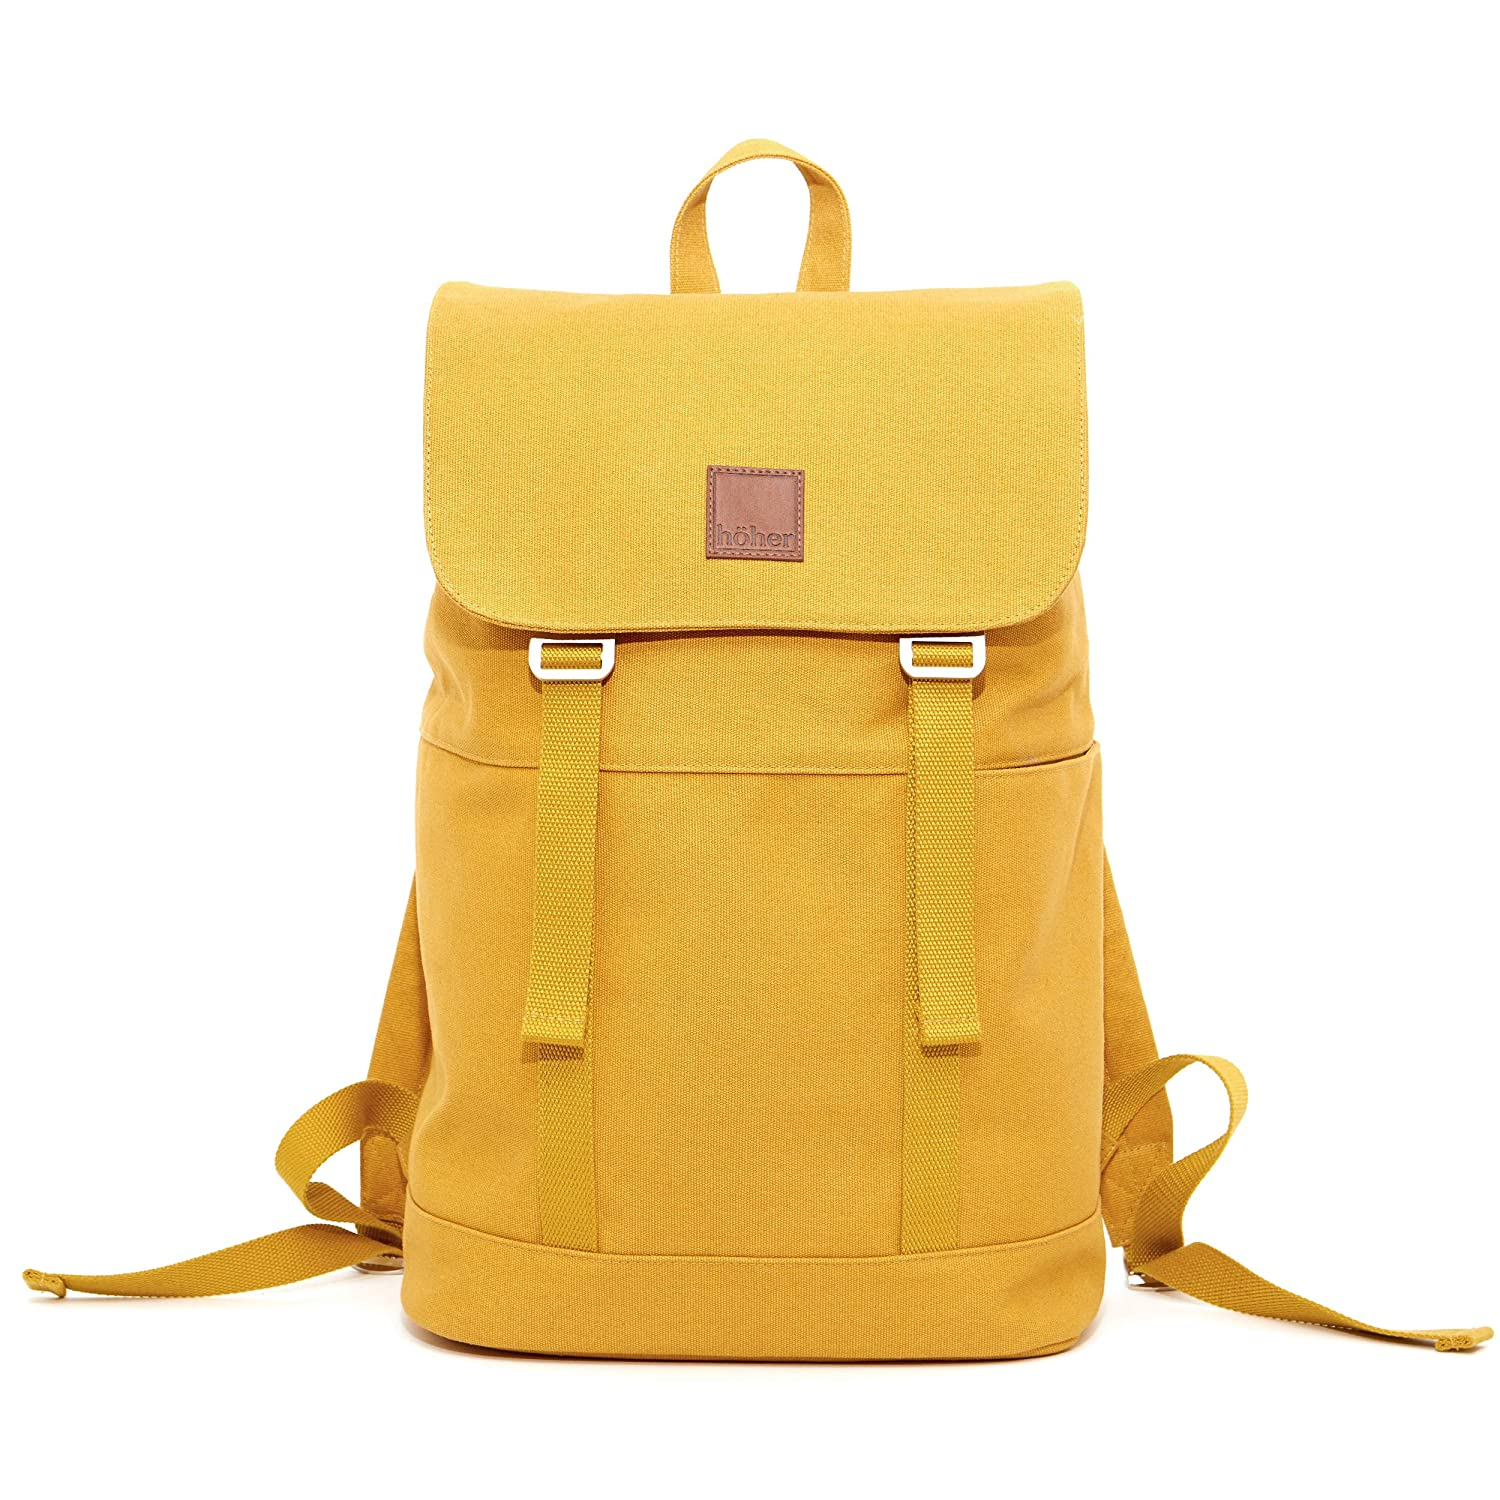 d590d33fa8 ... Large 24L Capacity With Drawstring, Padded Laptop Sleeve | Multiple Zip  Pockets | Premium Quality | Work, Cycling, Gym, School, University | Travel  Gift